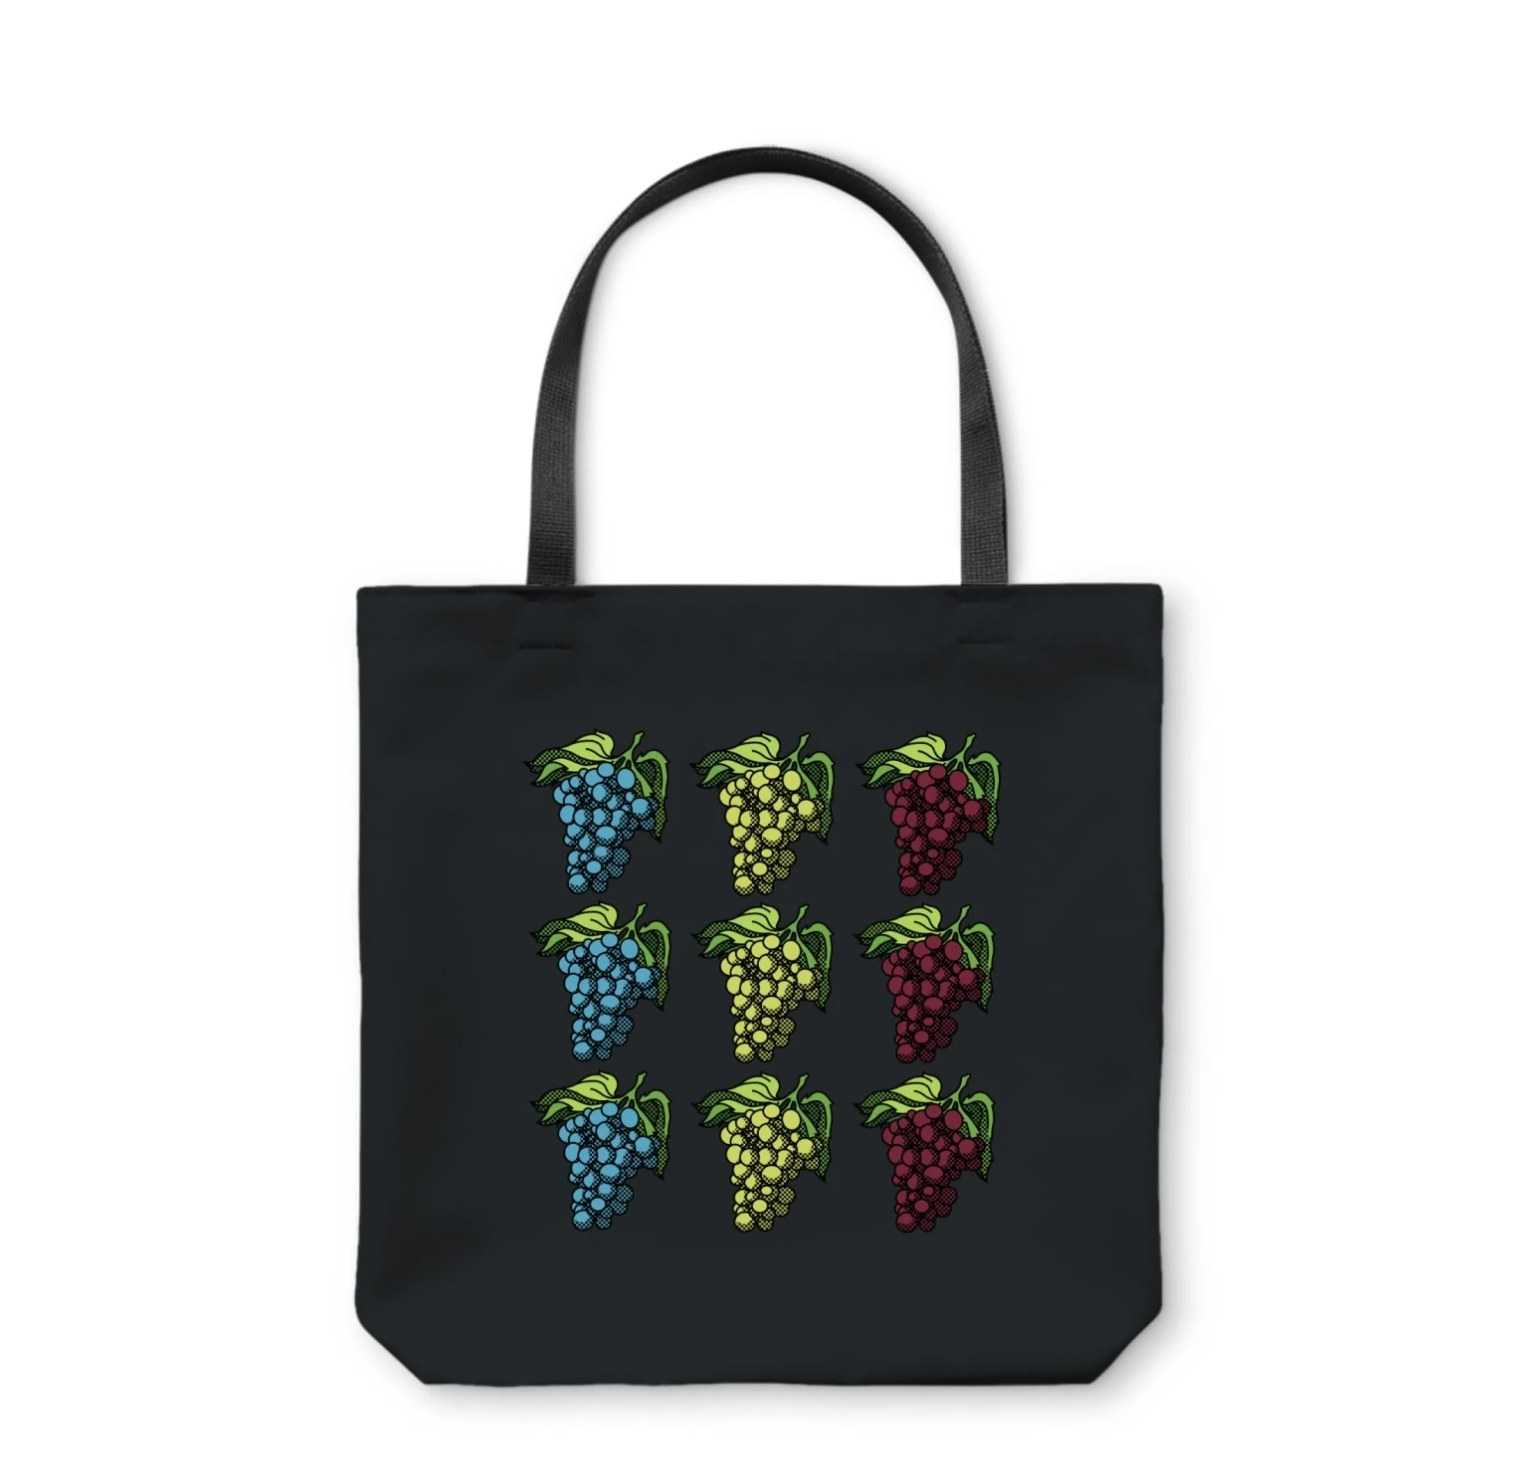 The bag in black with cartoon grapes in blue, white, and red on them